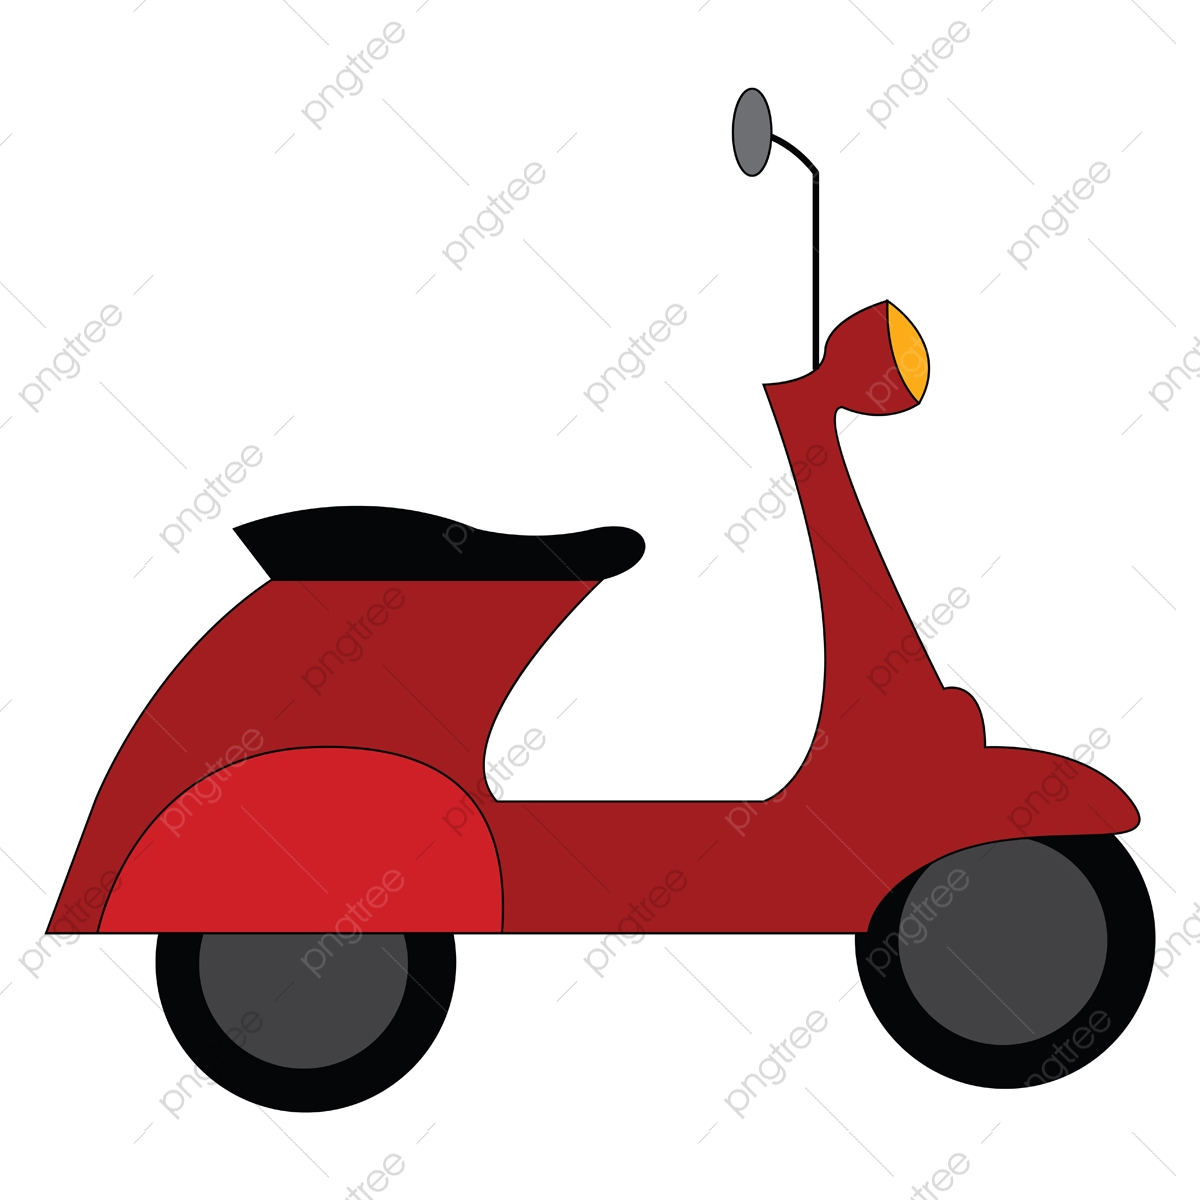 Red Vespa Scooter Vector Illustration On White Background Scooter Clipart Scooter Isolated Png And Vector With Transparent Background For Free Download